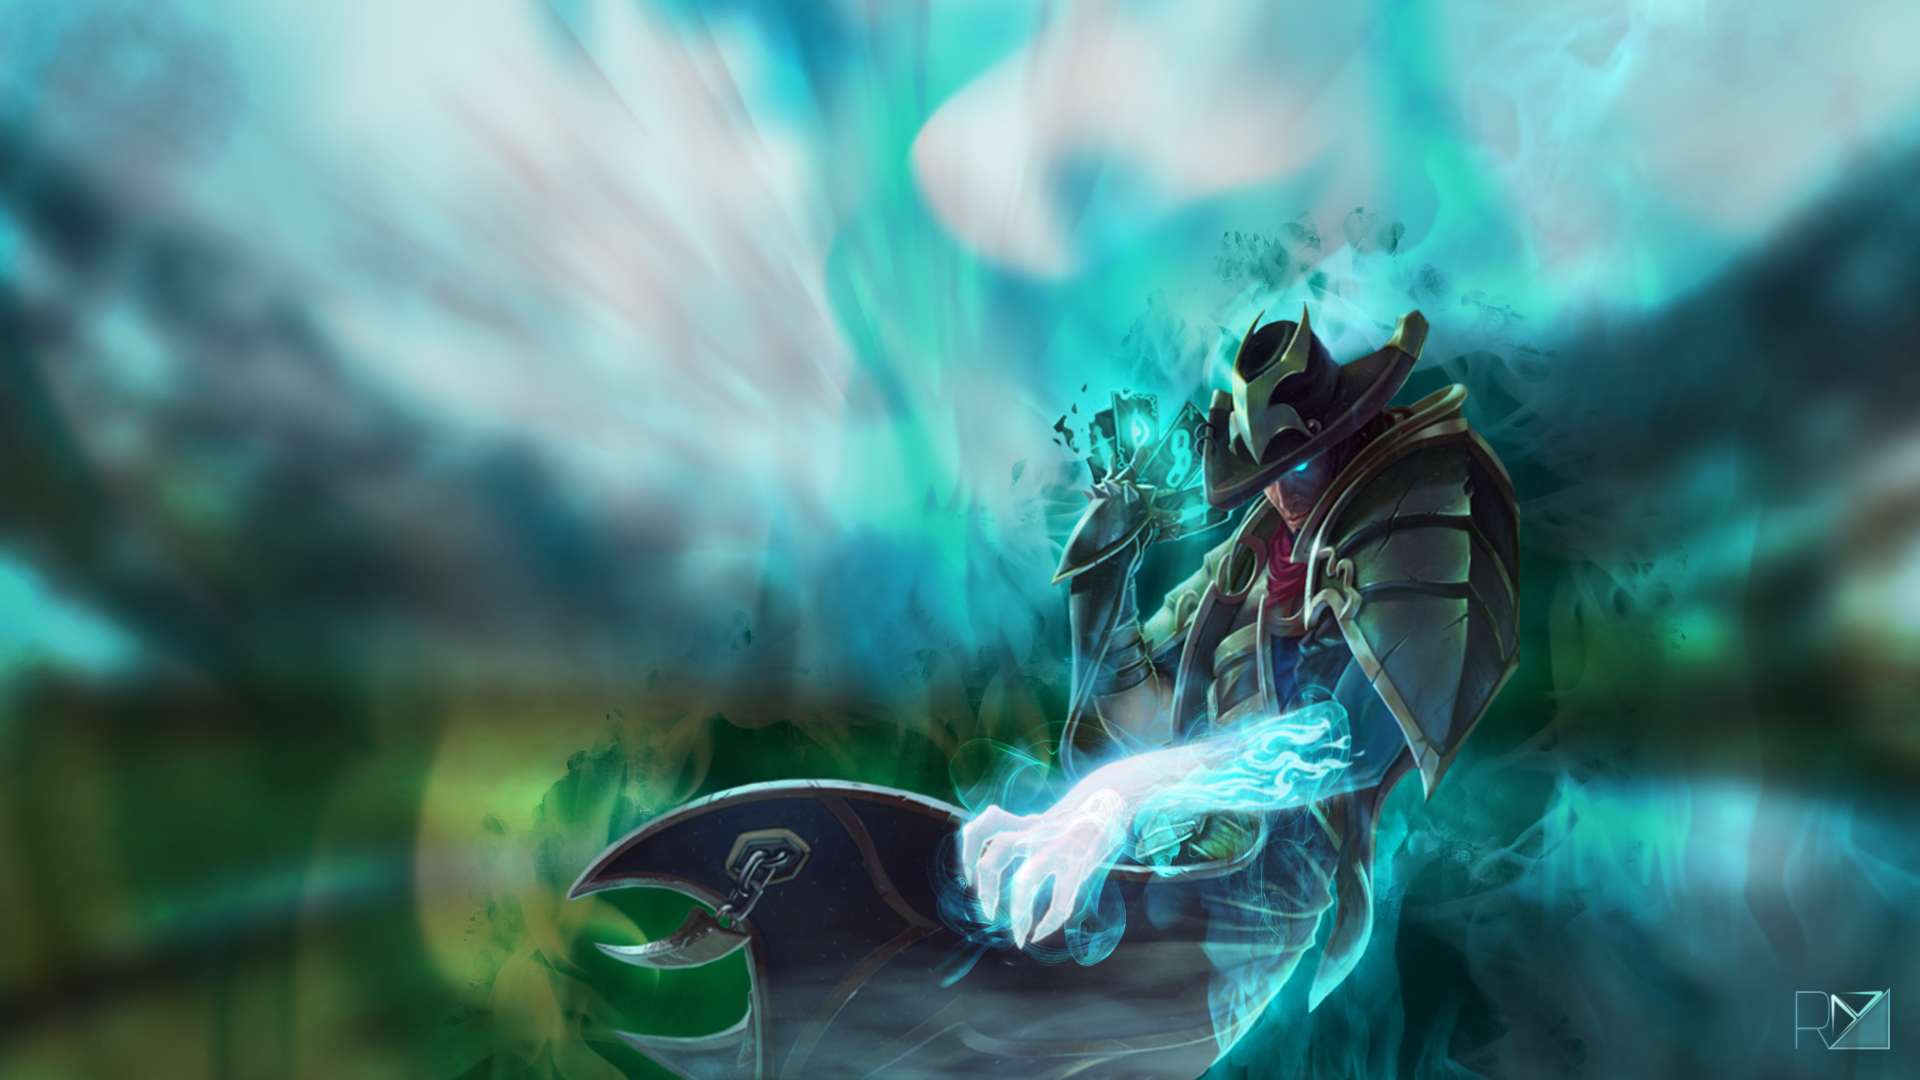 Twisted fate lolwallpapers twisted fate wallpaper voltagebd Images